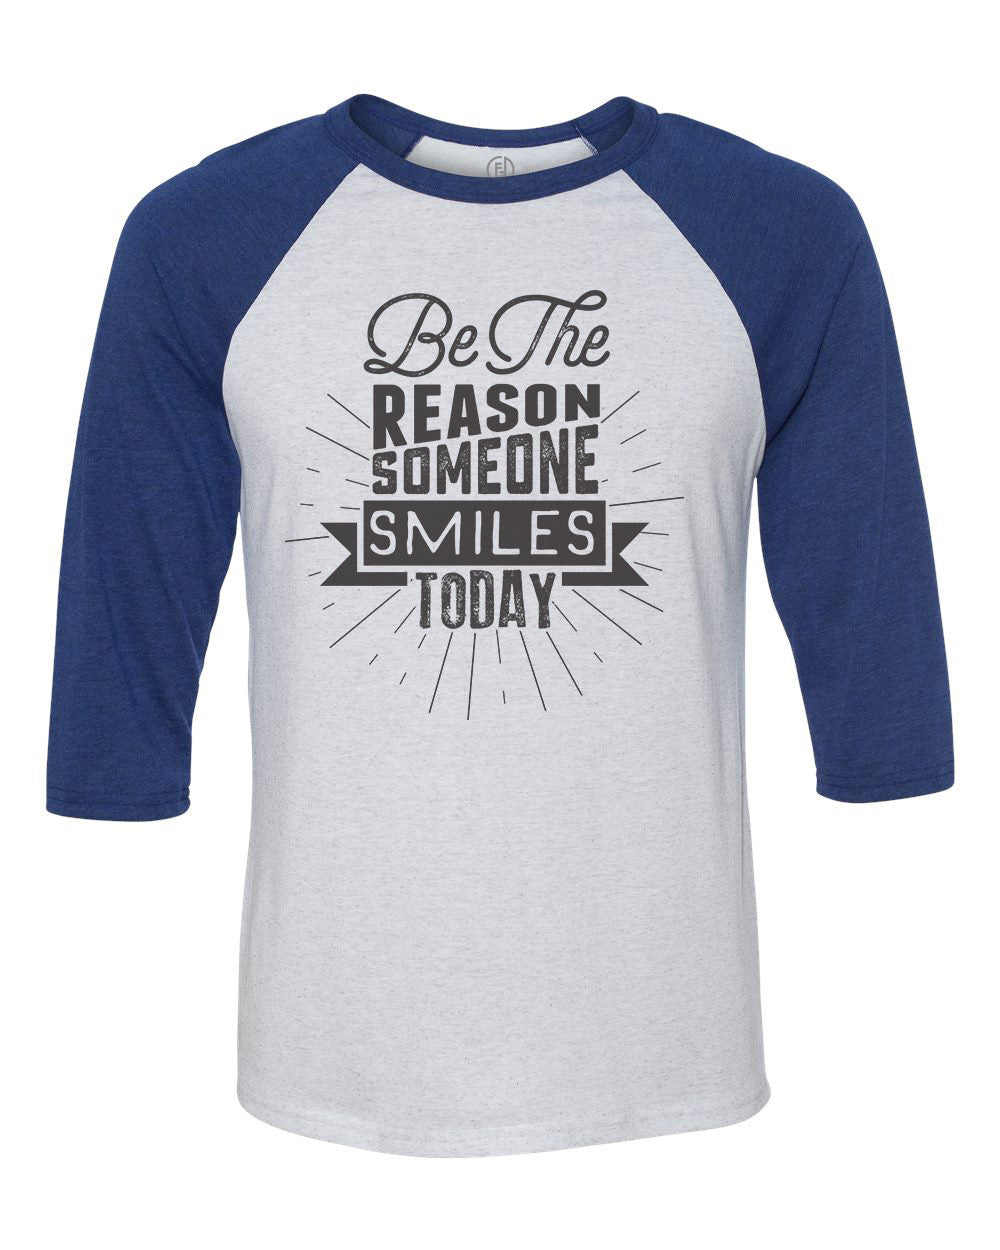 9ddb3bd1a Be The Reason Someone Smiles Today - Women's 3/4 Raglan Sleeve Baseball  Graphic Tee